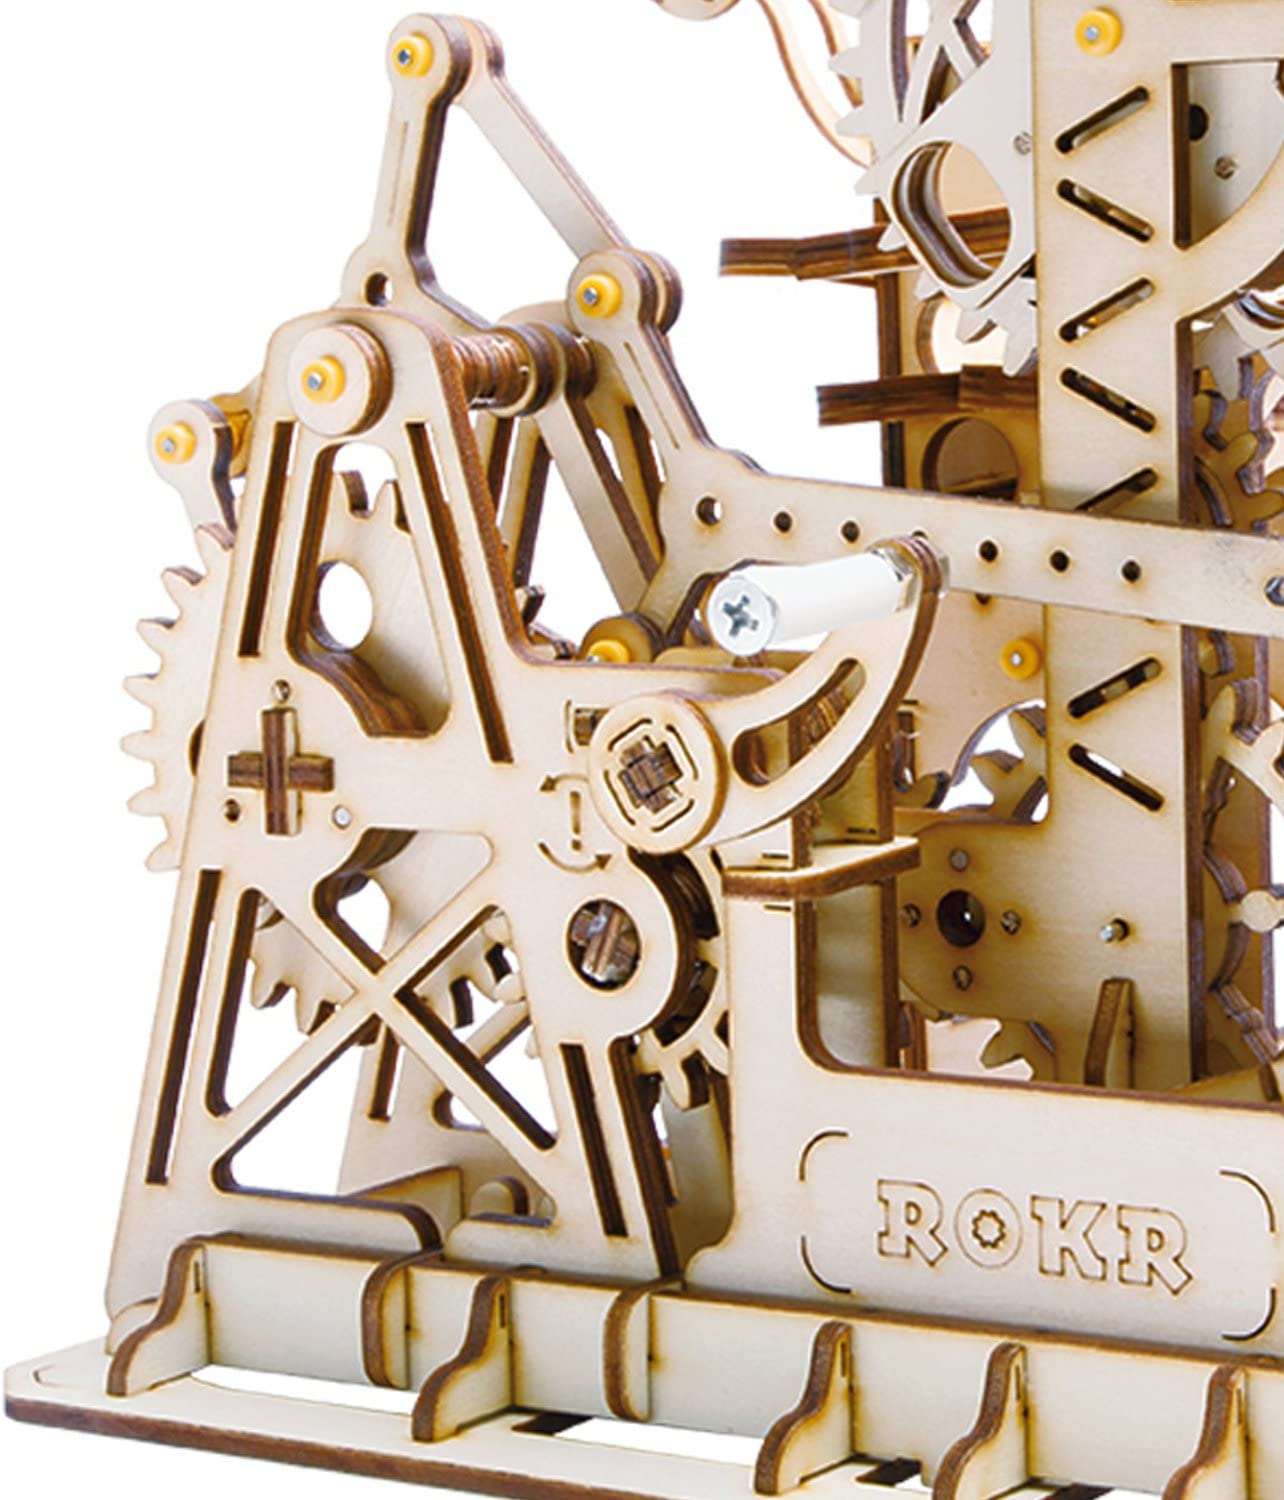 ROBOTIME 3D Wooden Puzzle Brain Teaser Toys Mechanical Gears Kit Unique Craft Kits Tower Coaster with Steel Balls Executive Desk Toys Best Gifts for Adults and Kids